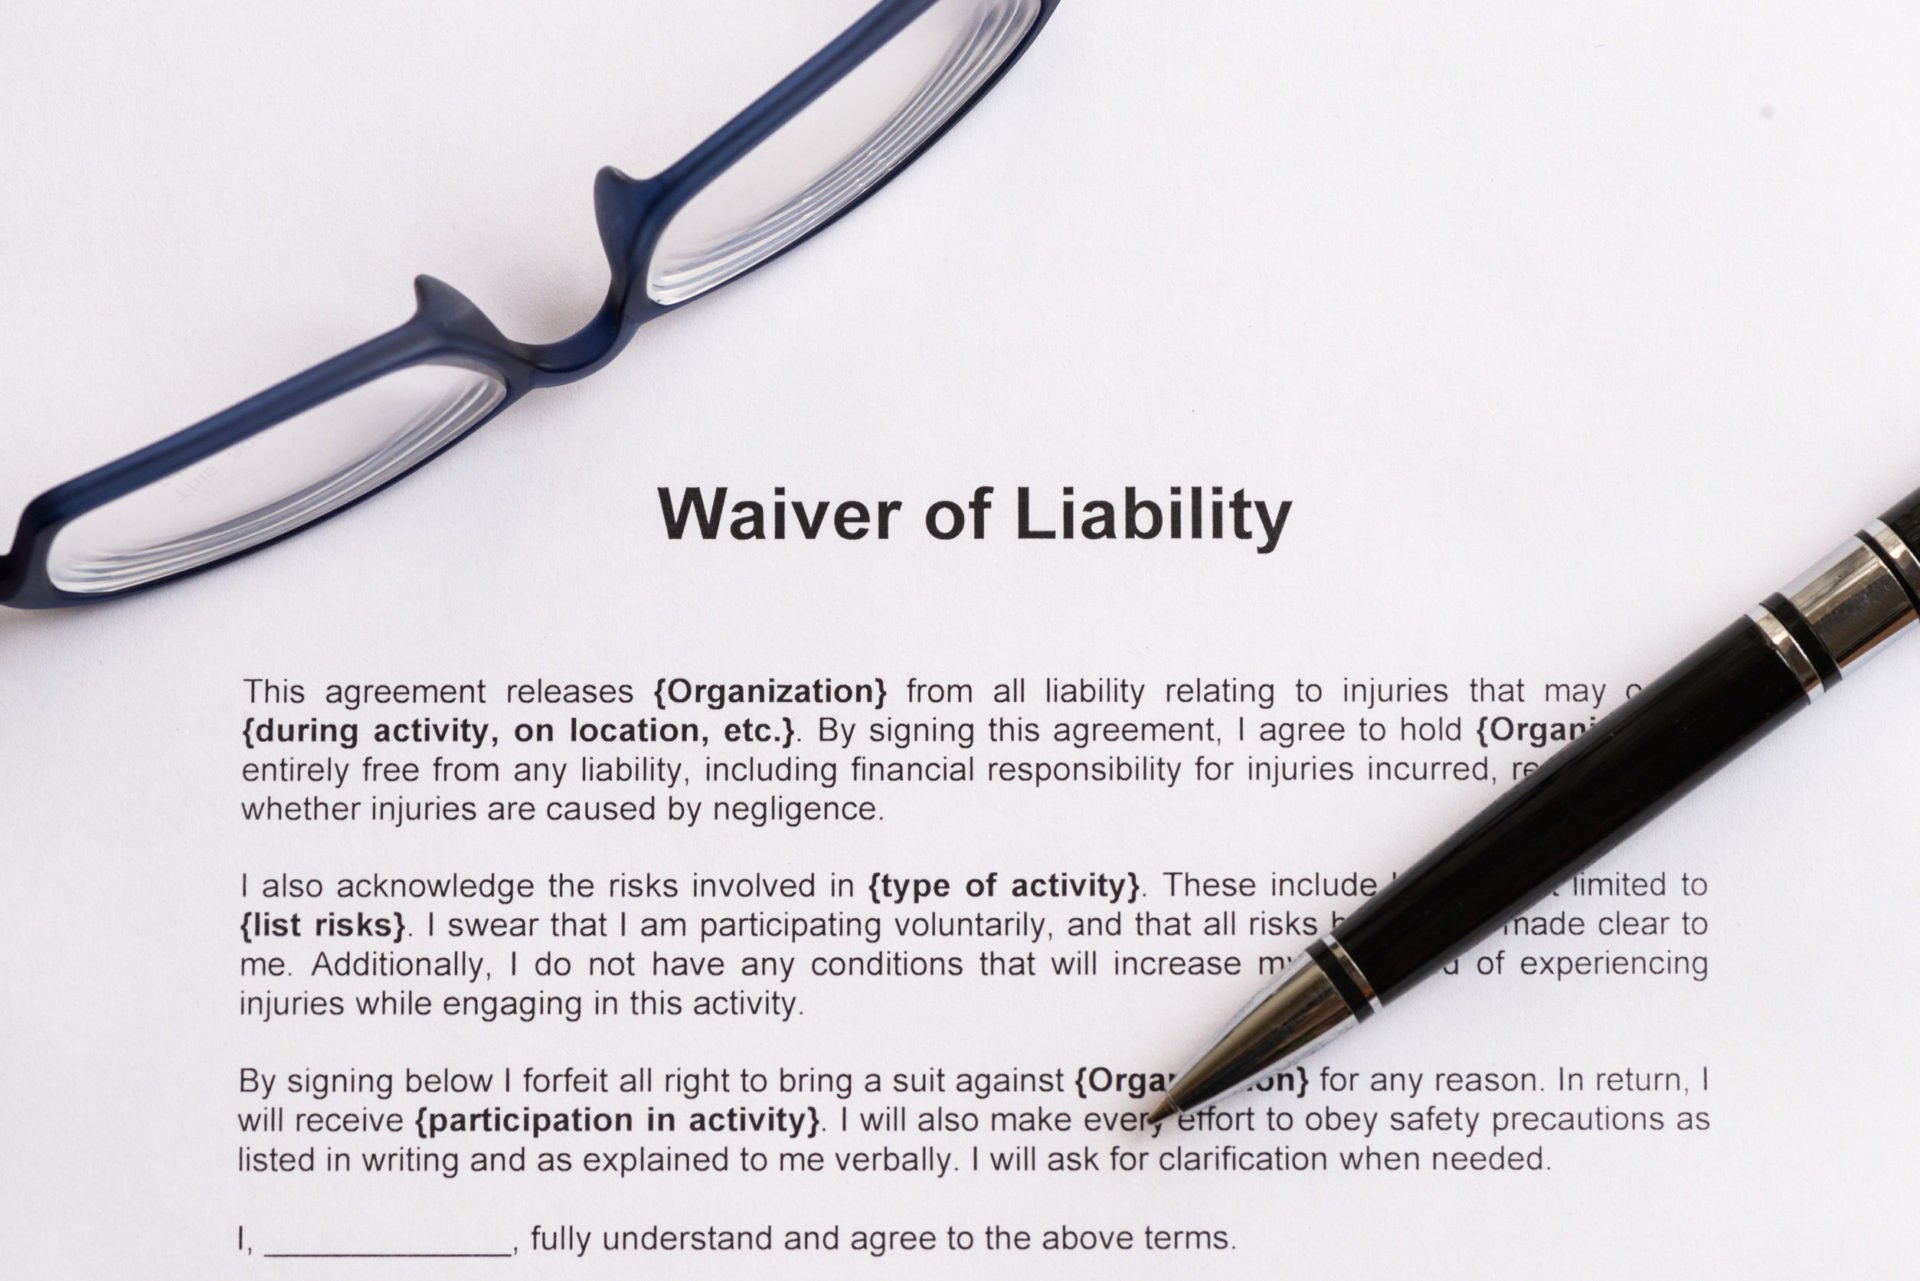 COVID Liability Waivers: Shifting the Blame